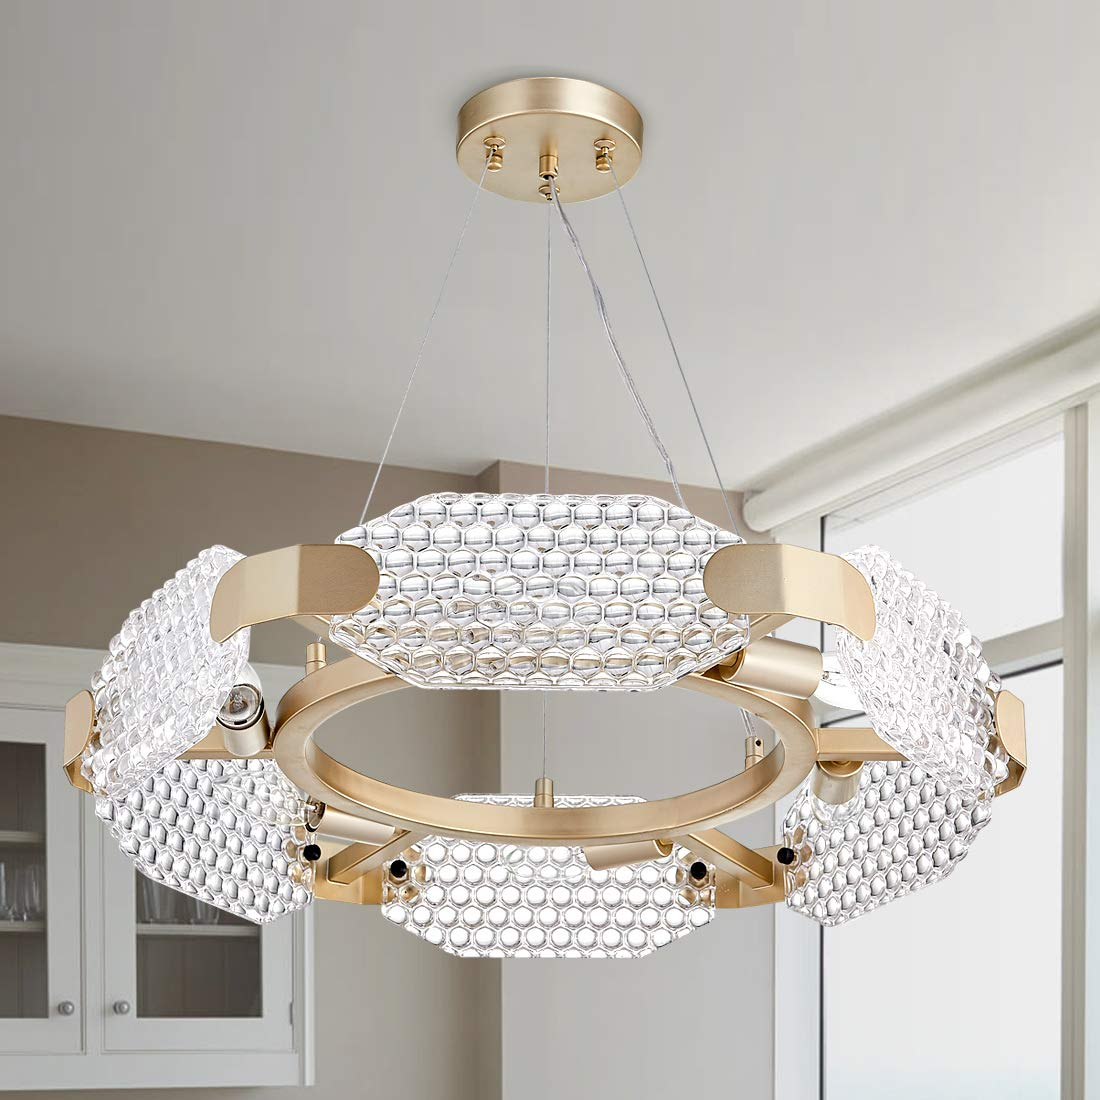 TZOE Crystal Pendant Light,Modern Chandelier,6-Light Round Chandeliers,Gold Metal&Clear Glass,Crystal Chandelier for Kitchen Island,Foyer,Dining Rooms,Bedroom,Liveing Room,Width 22.4 Inch